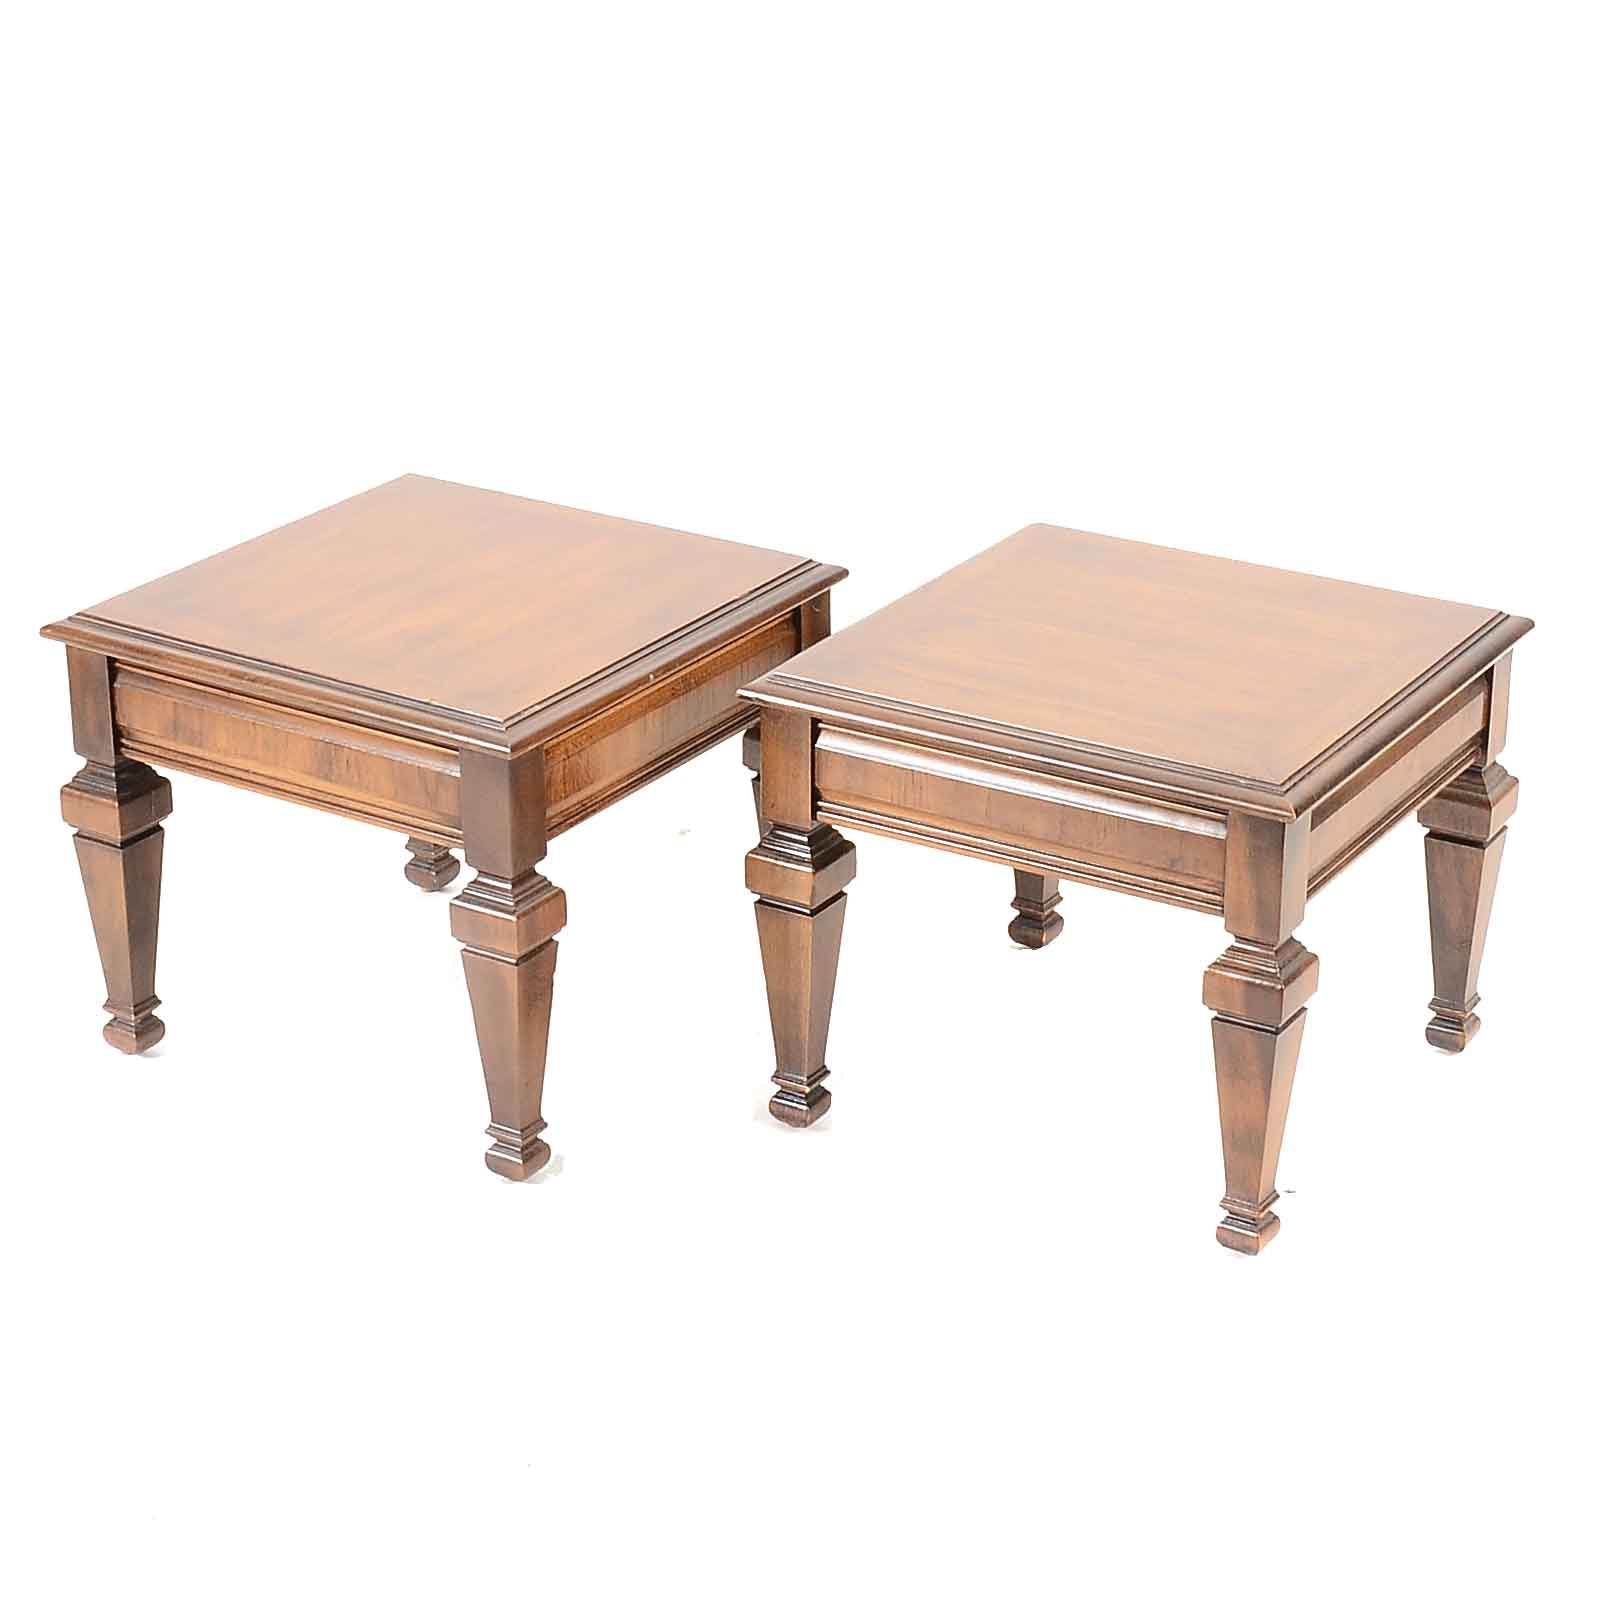 Pair of Lane Pecan End Tables and a Travertine Top